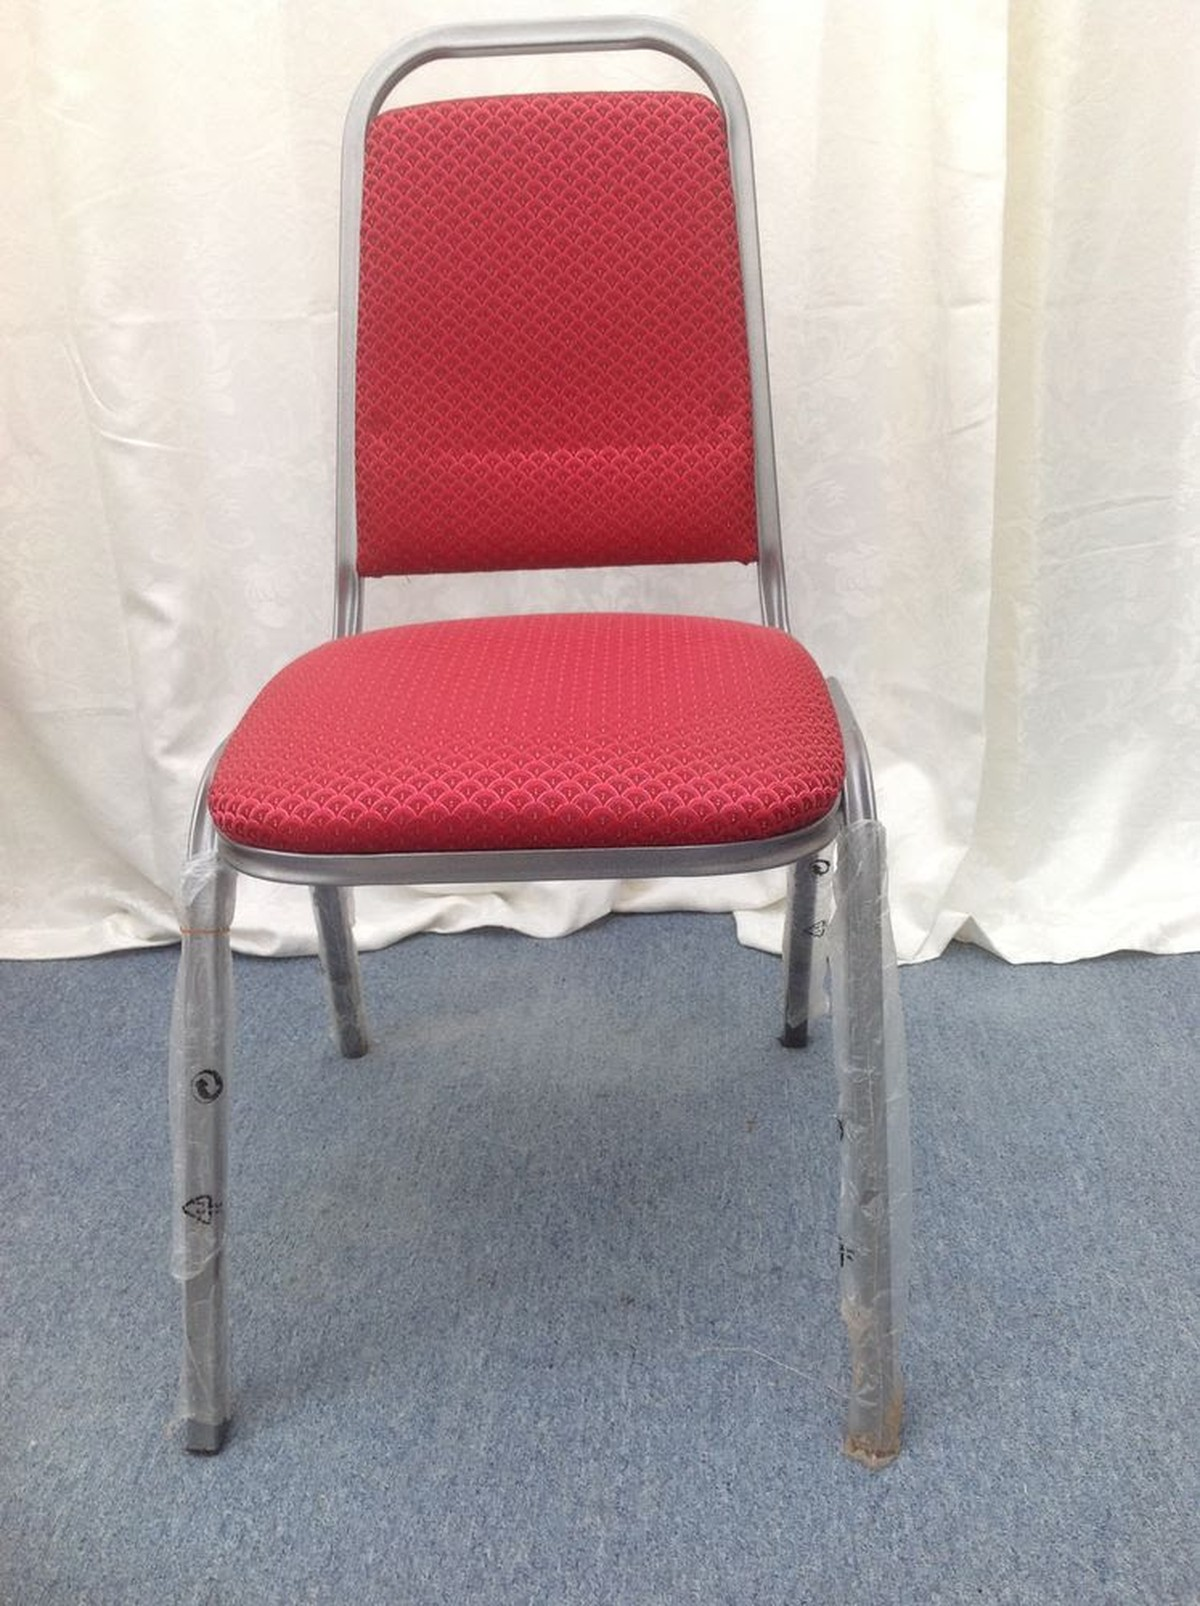 Used Banquet Chairs Secondhand Websites Index Page Steel Frame Banqueting Chairs